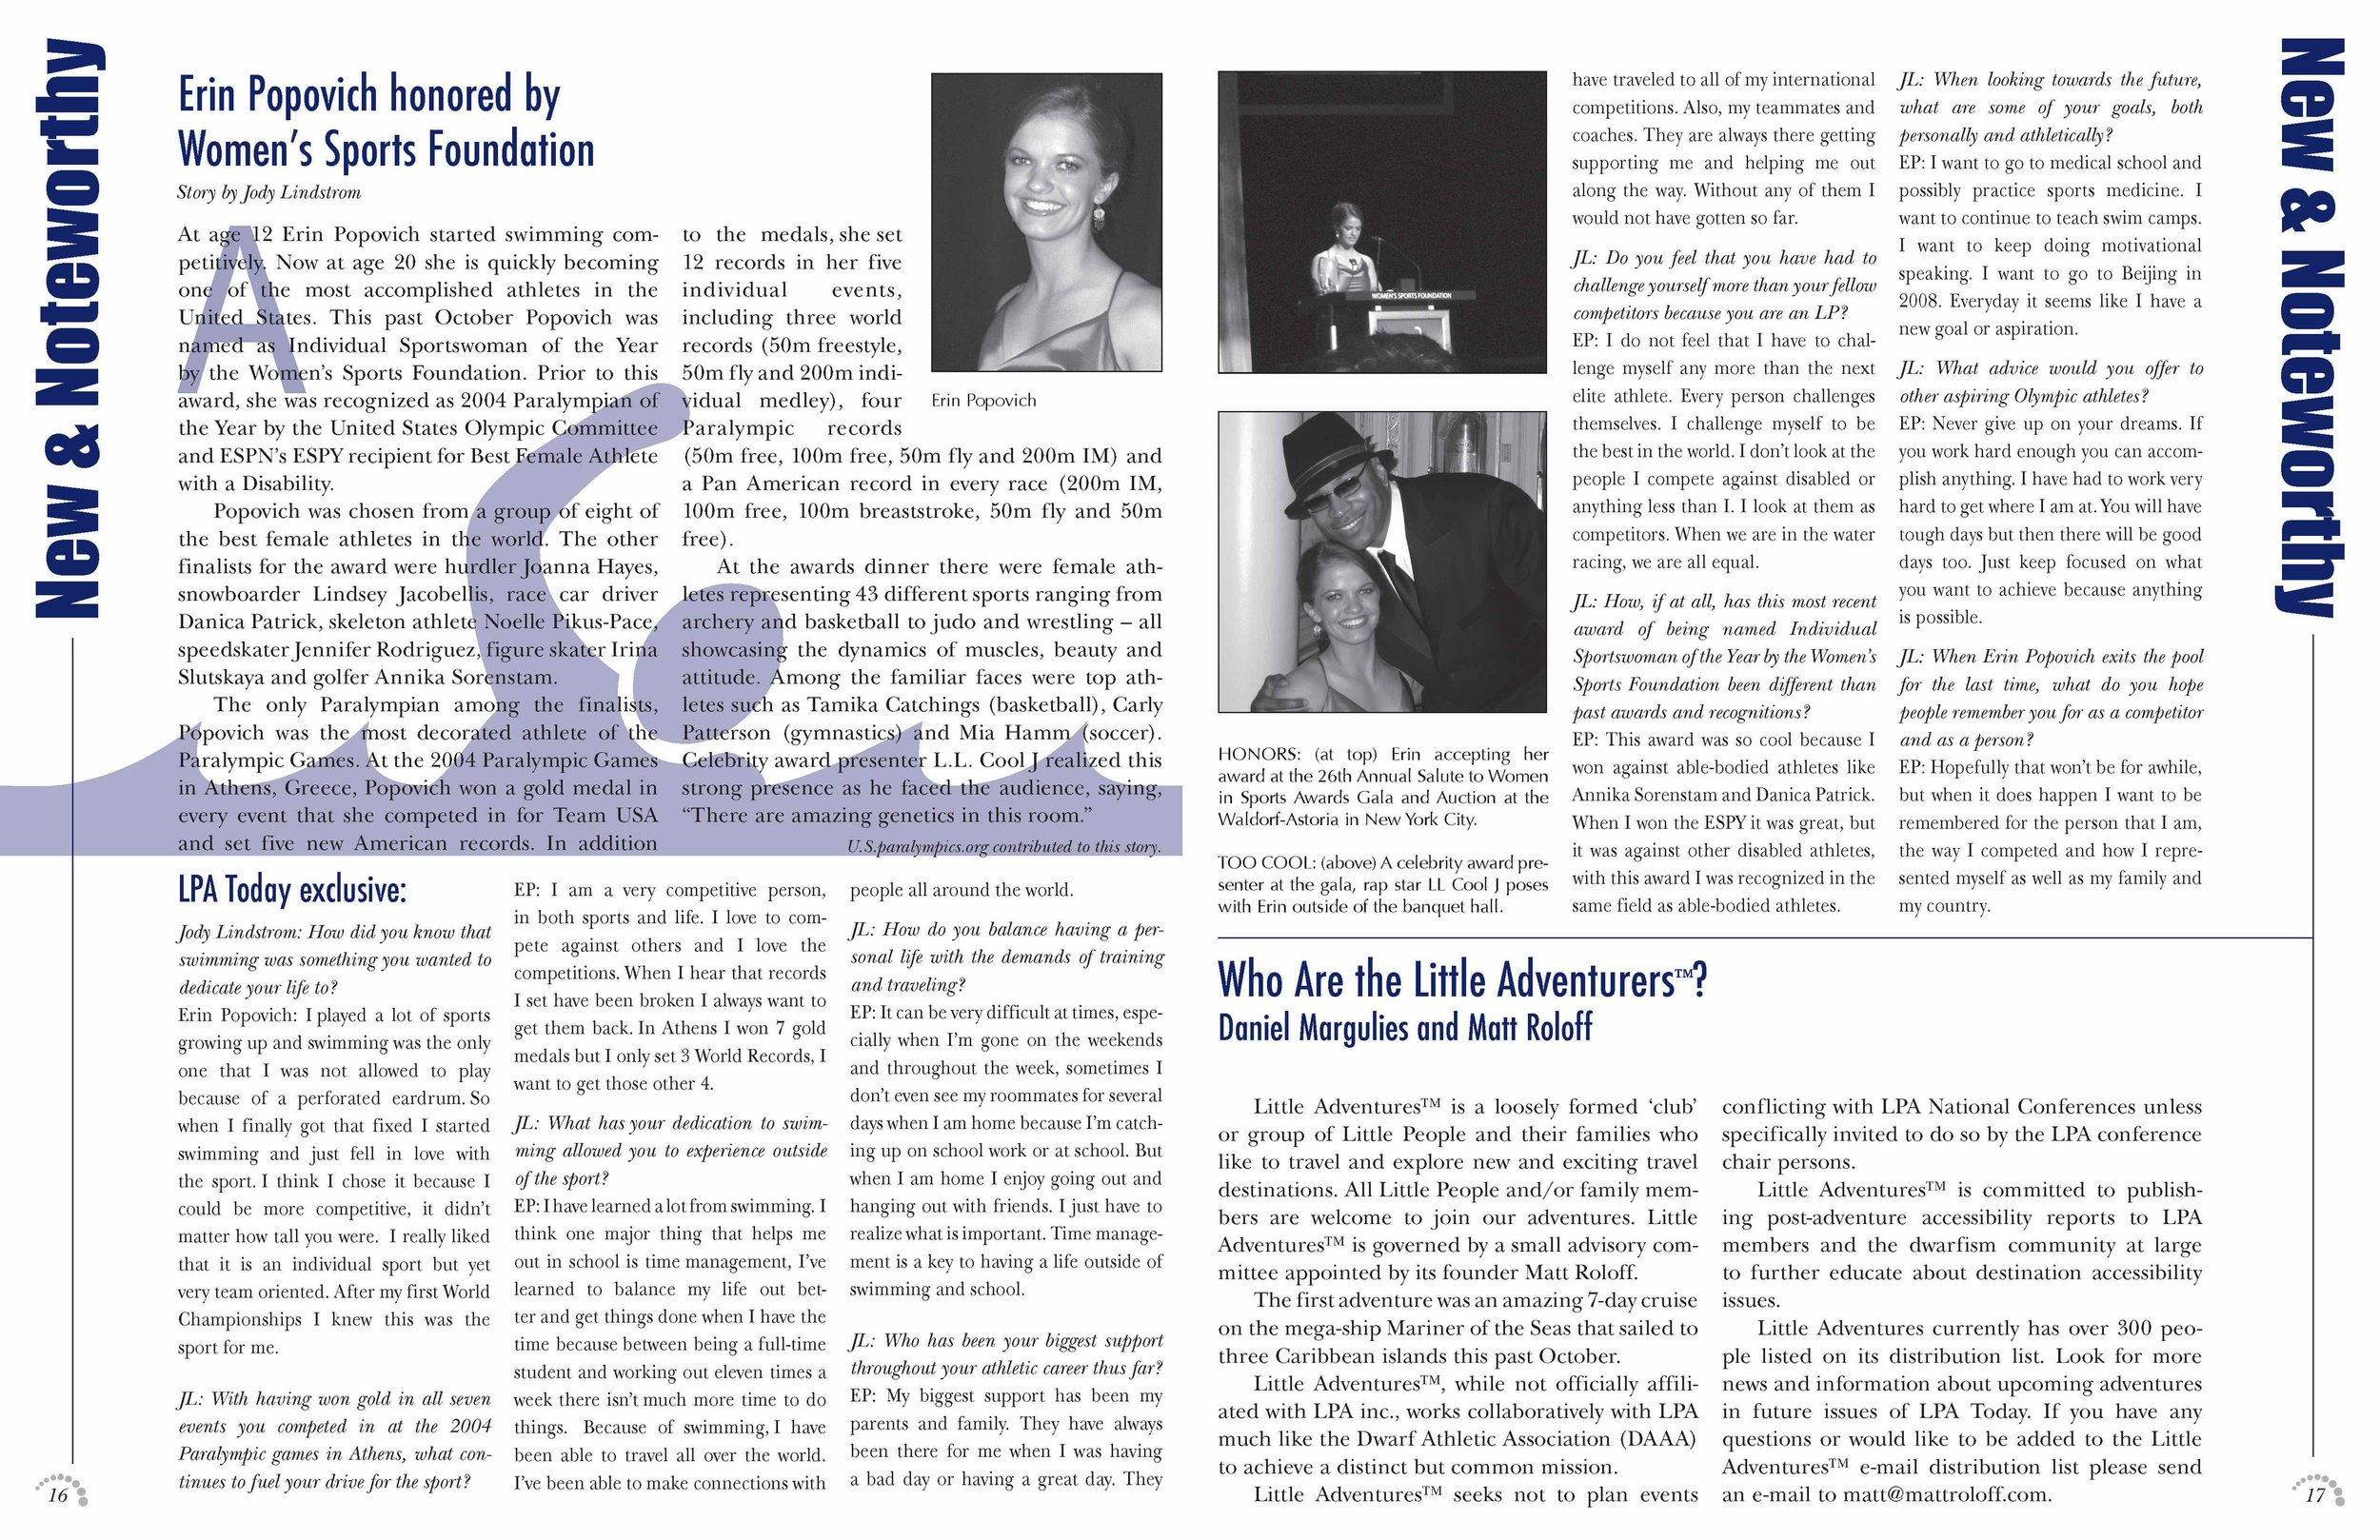 LPA Today Magazine  Pages 16 and 17, Volume 39 Issue 3